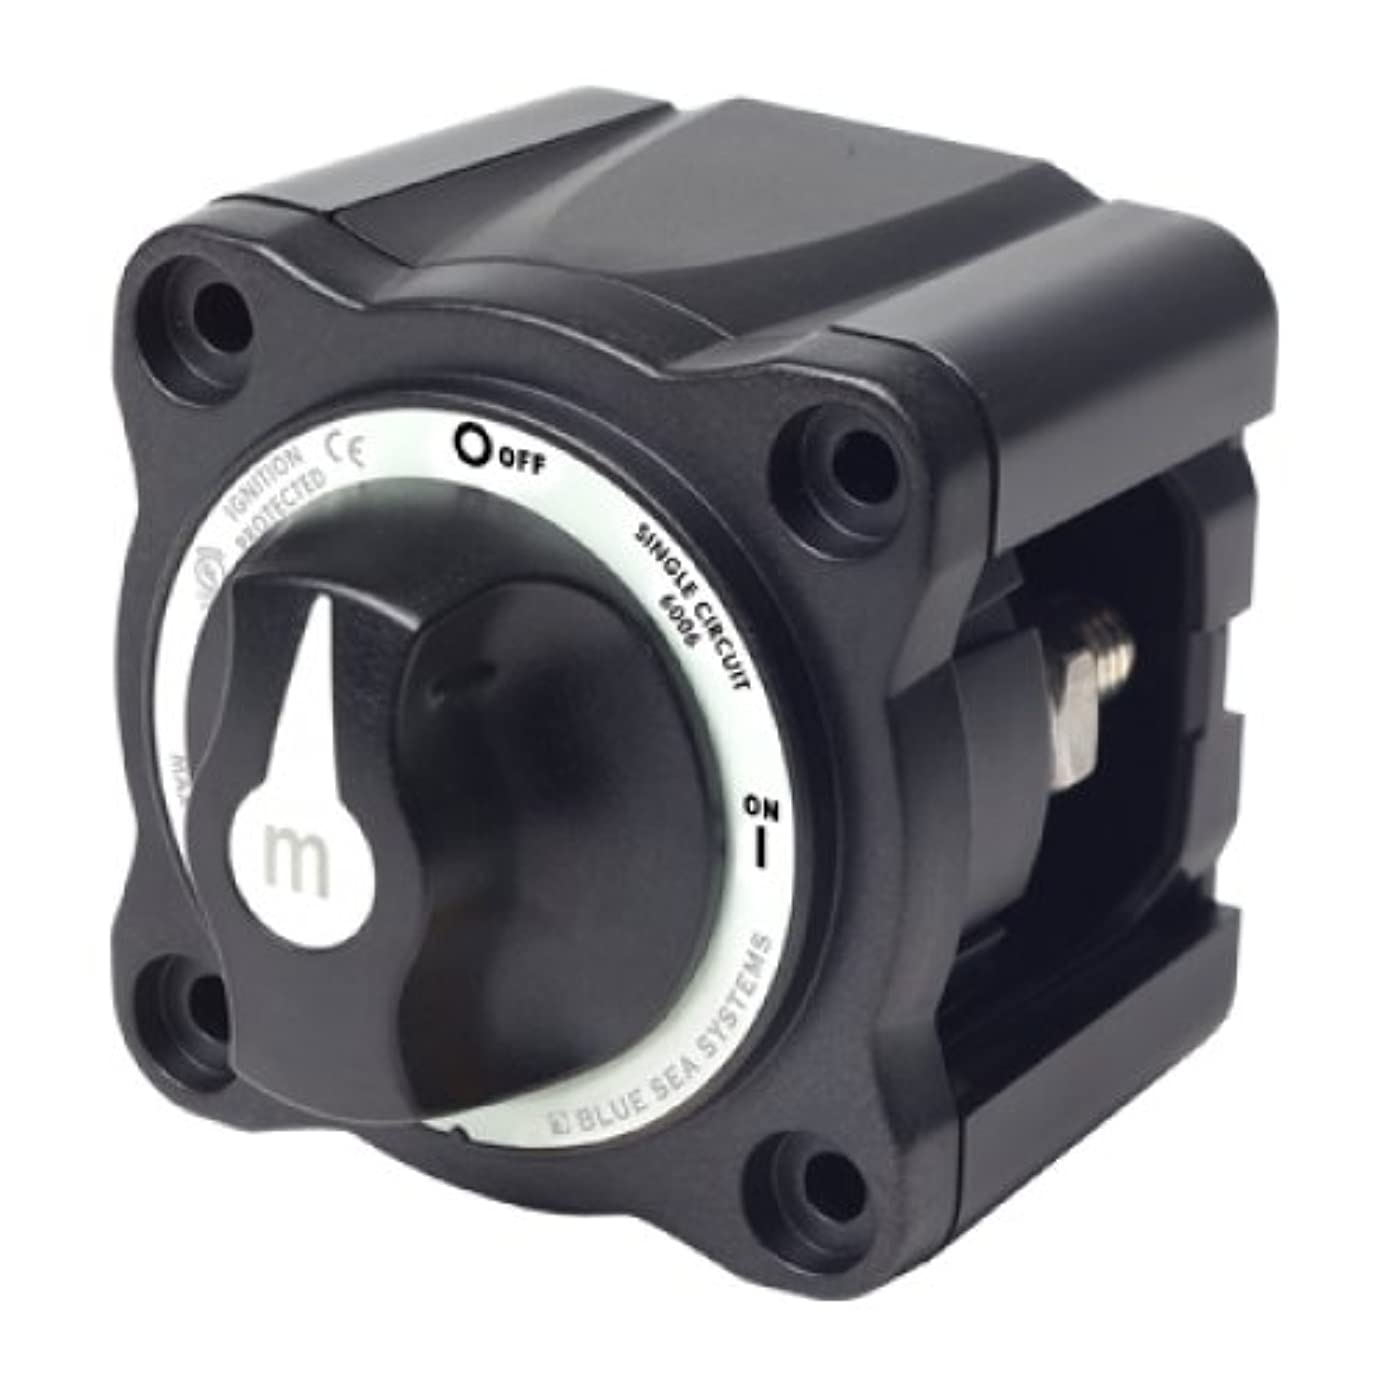 BLUE SEA SYSTEMS Mini Battery Switch, MFG# 6005200, Black, 300A cont., 500A int., 48VDC. Positions: single-circuit on-off. / BS-6006200 /